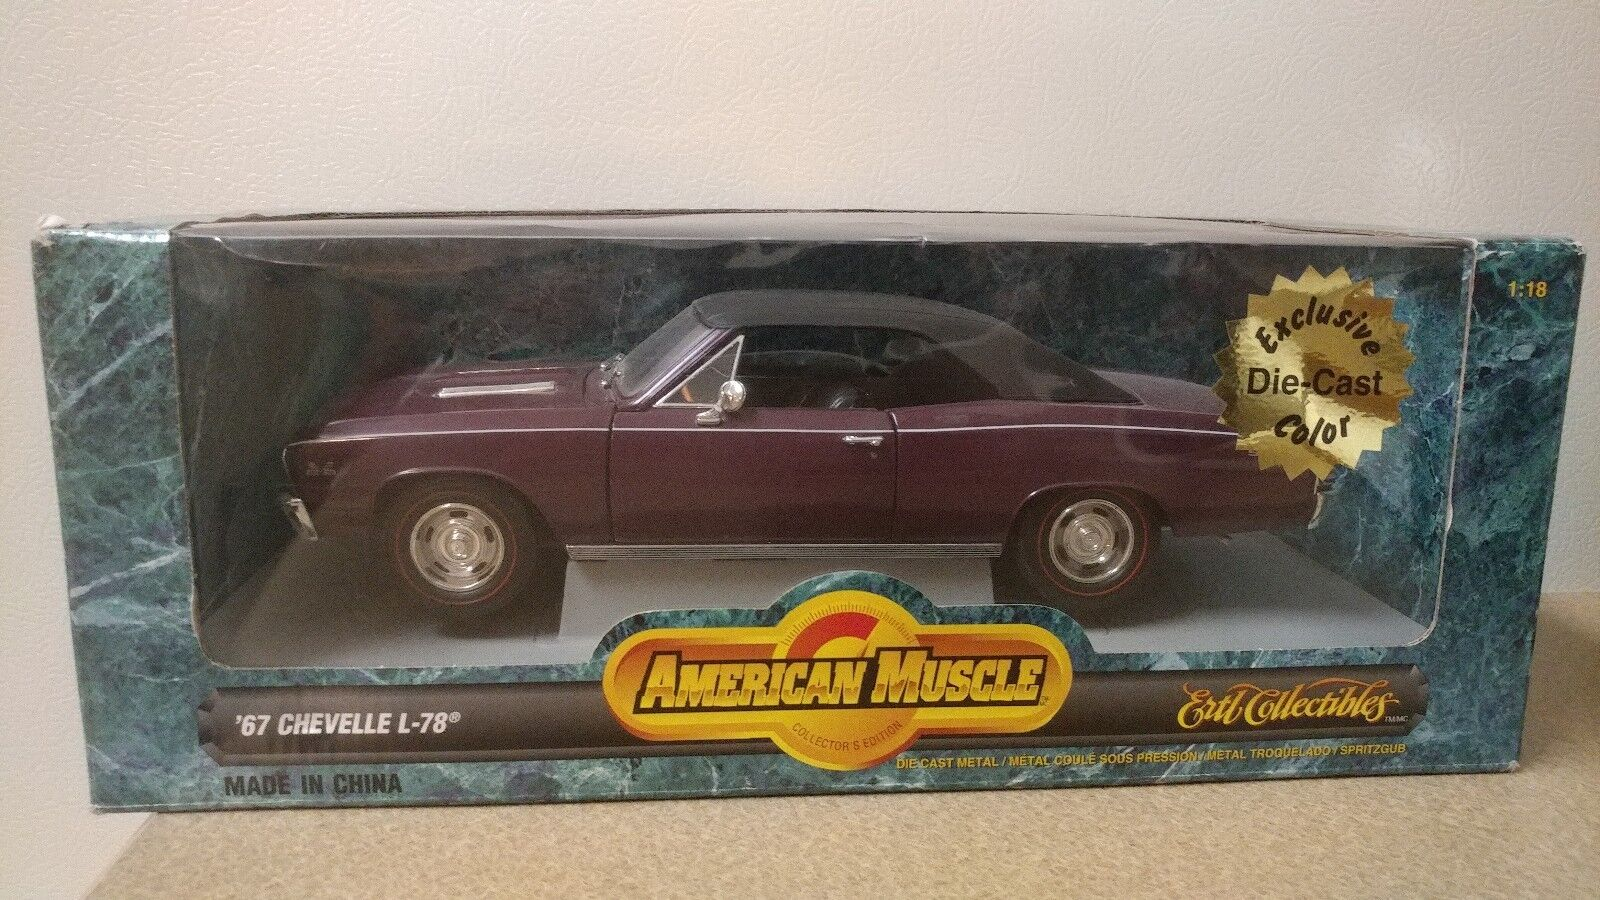 '67 CHEVELLE L-78 Limited Edition 1 18 diecast ERTL American Muscle